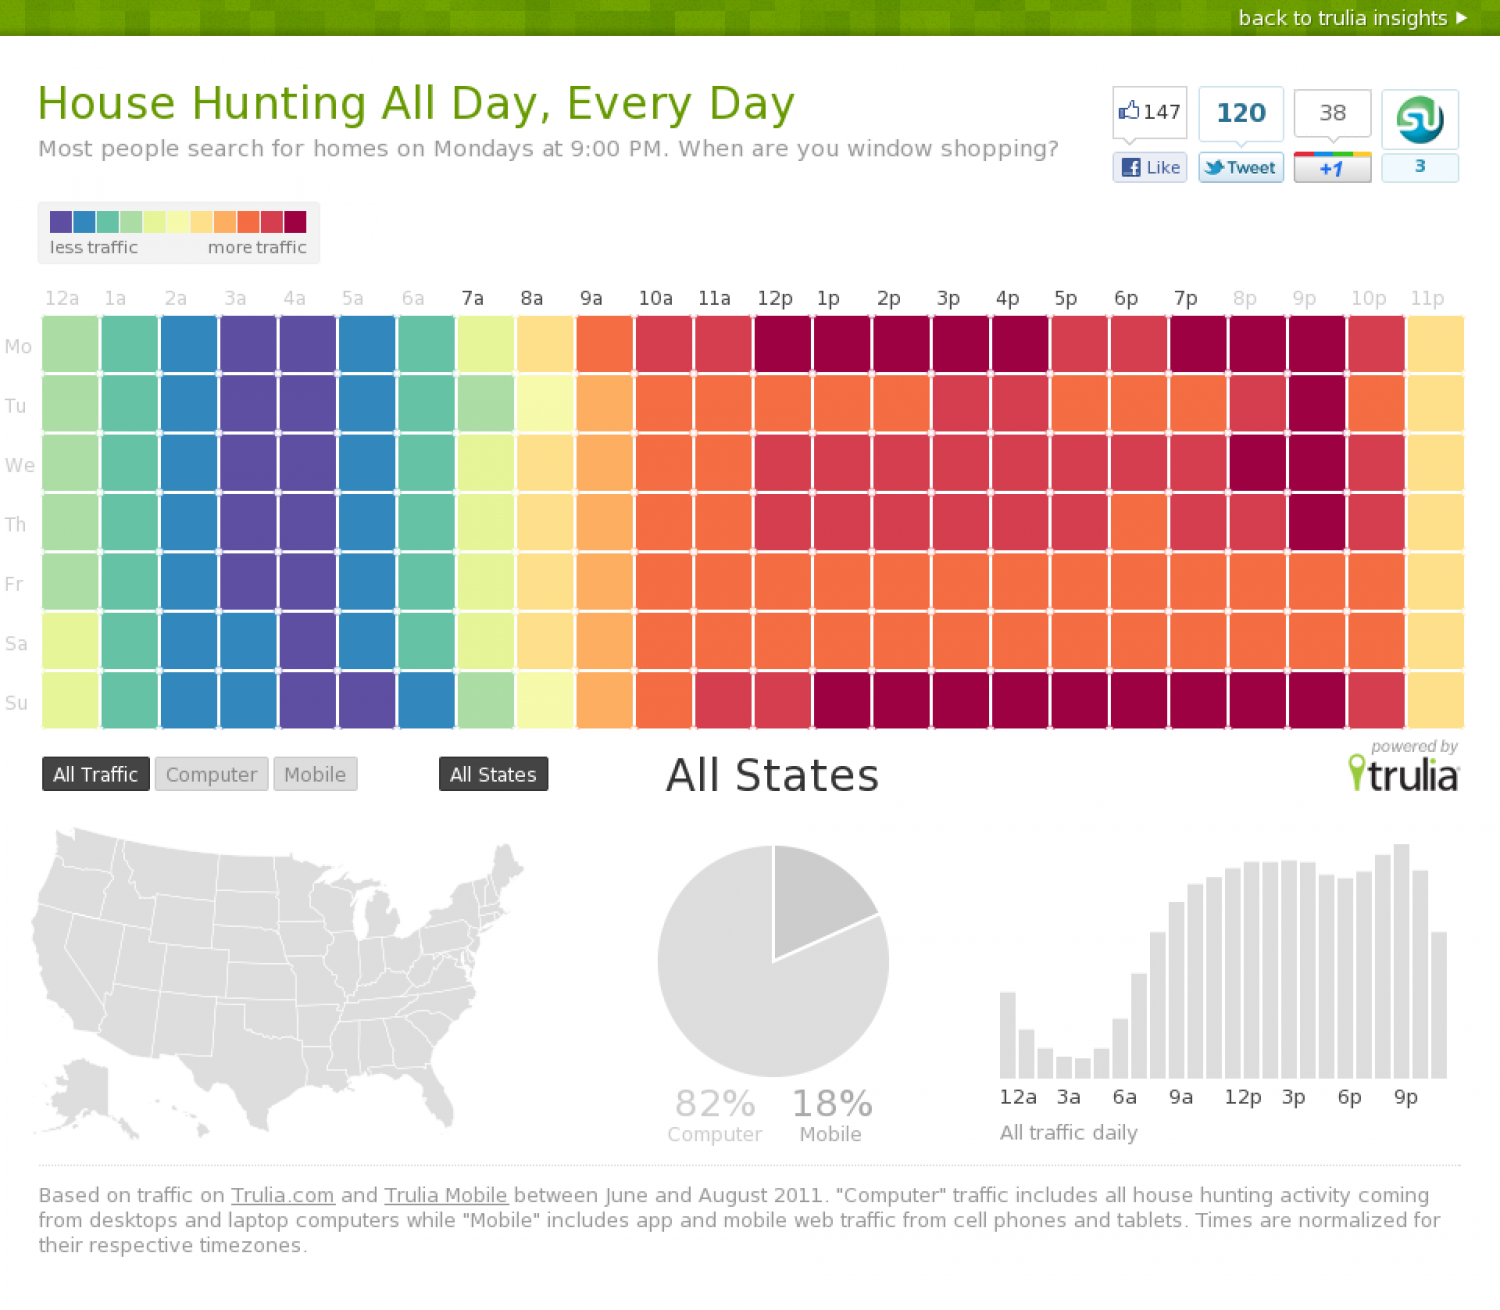 House Hunting Infographic